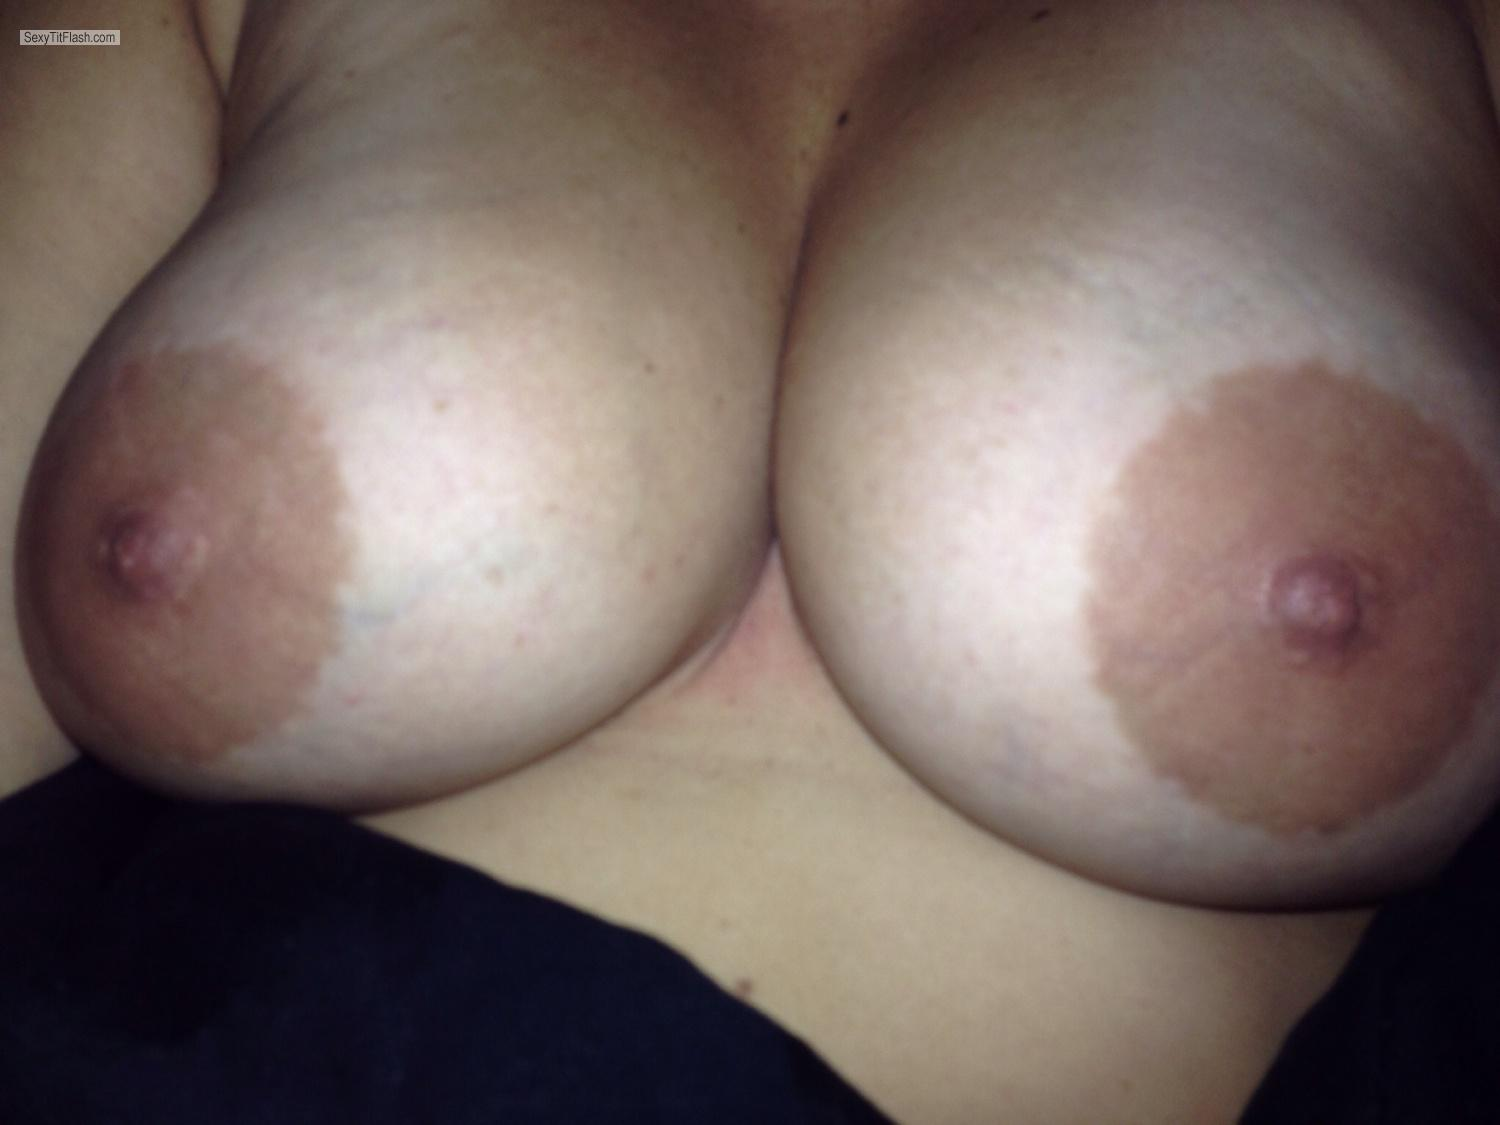 Tit Flash: My Very Big Tits By IPhone (Selfie) - Big from United States